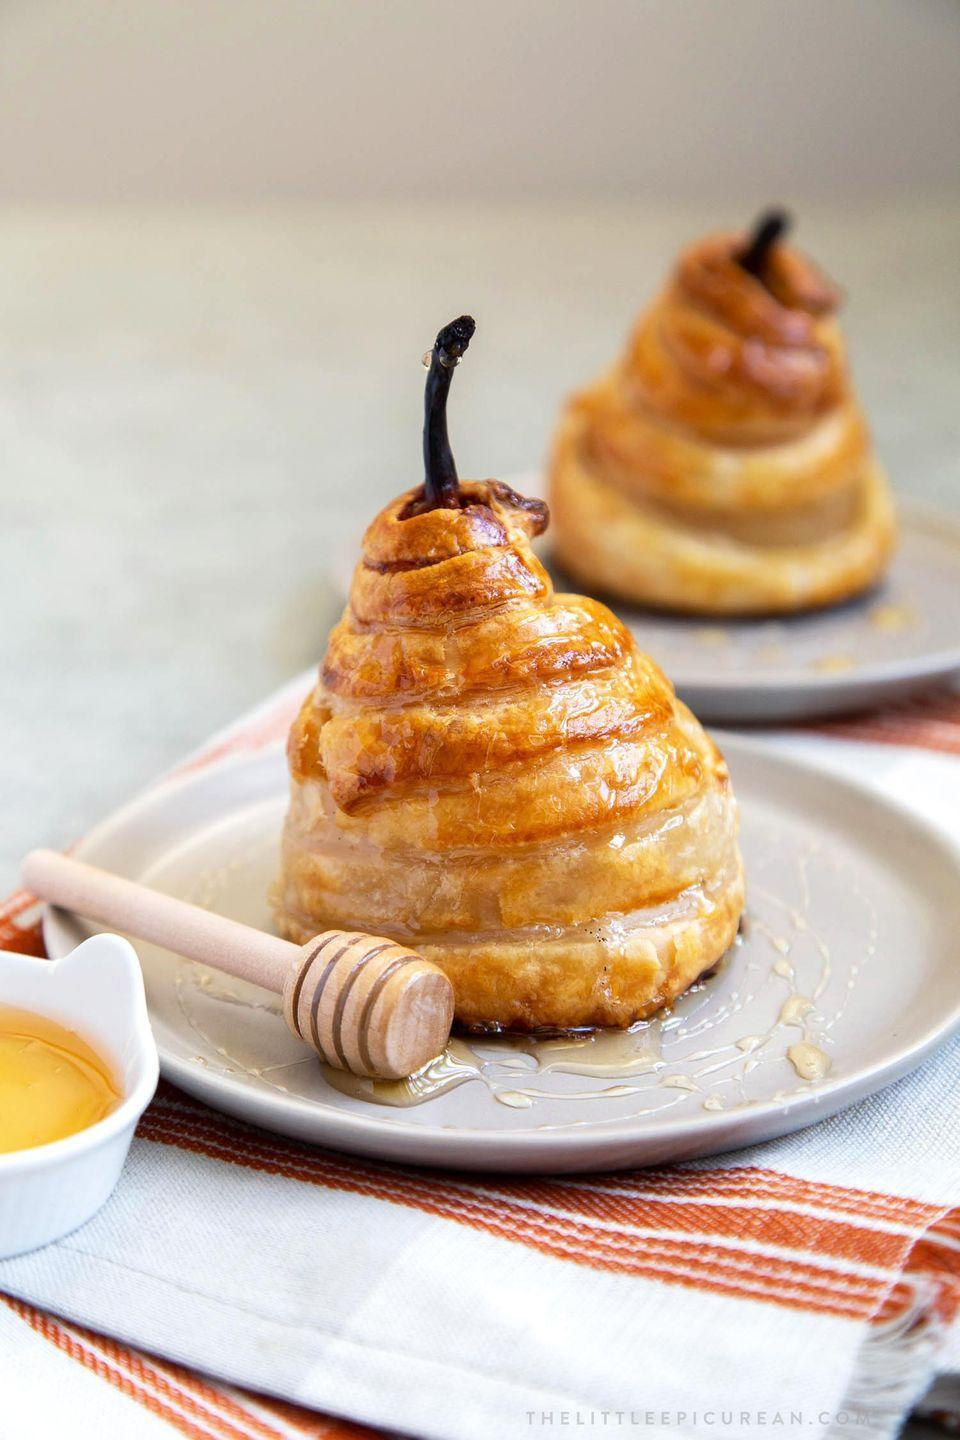 """<p>Need an elegant winter dessert for a dinner party? Poach pears in a sweet vanilla cinnamon liquid, then bake each one in a flaky puff pastry crust.</p><p><a href=""""https://www.thelittleepicurean.com/2019/11/poached-pear-puff-pastry.html"""" rel=""""nofollow noopener"""" target=""""_blank"""" data-ylk=""""slk:Get the recipe"""" class=""""link rapid-noclick-resp"""">Get the recipe</a>.</p>"""